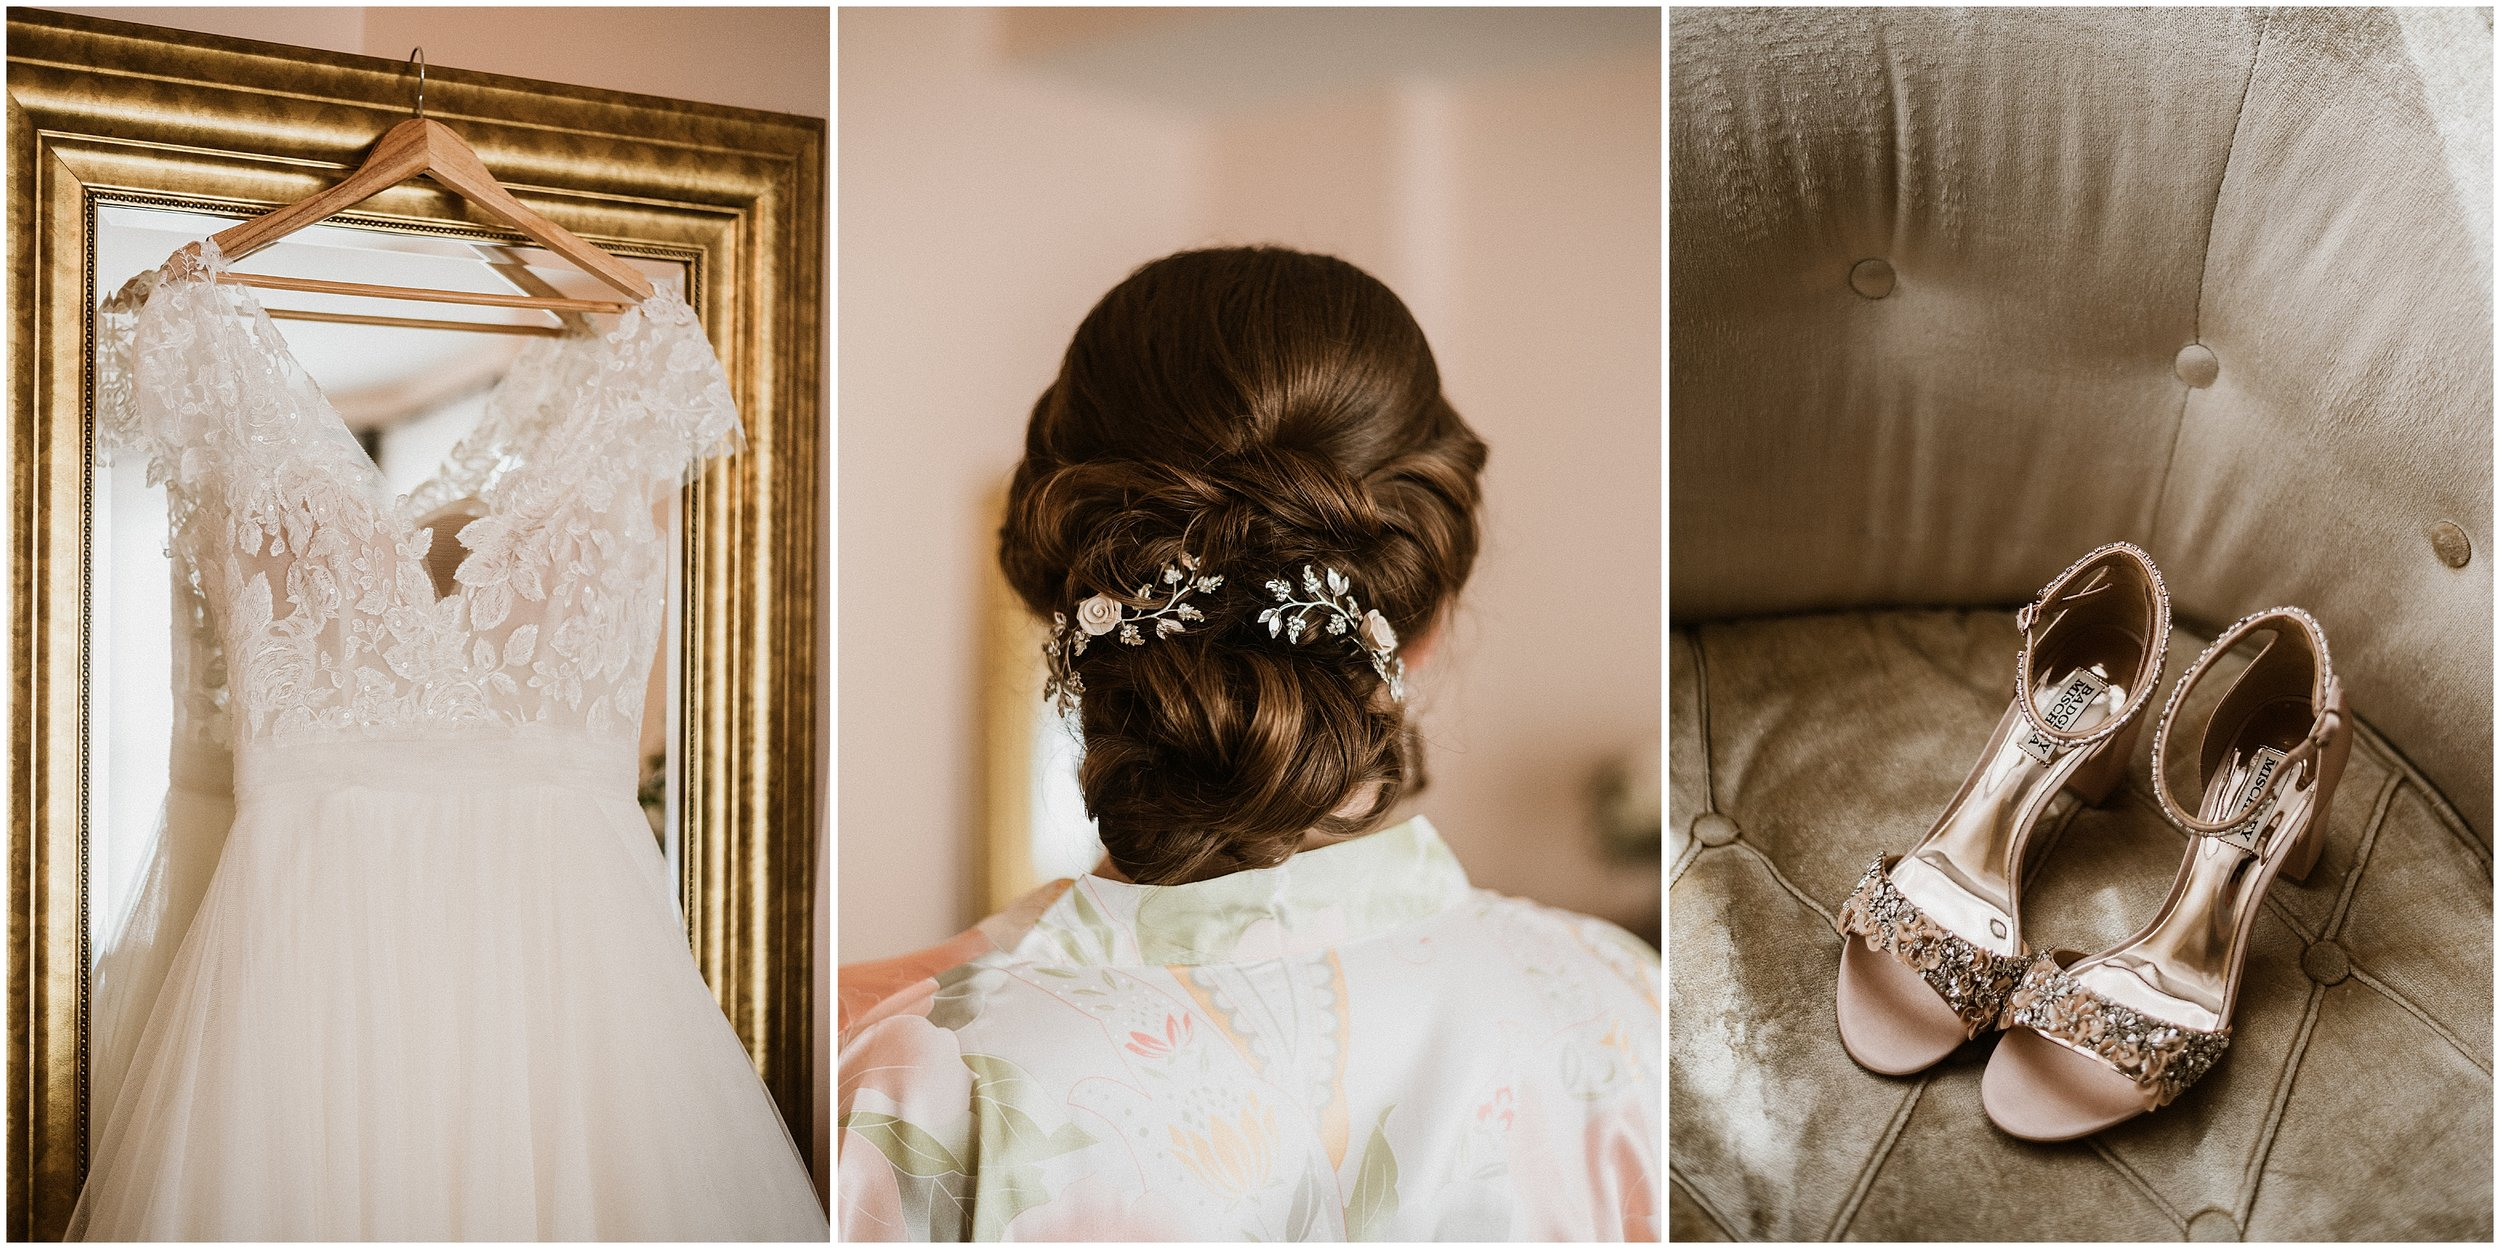 Brittany and Andrew | Elegant Vintage Wedding | The Haight, Elgin IL